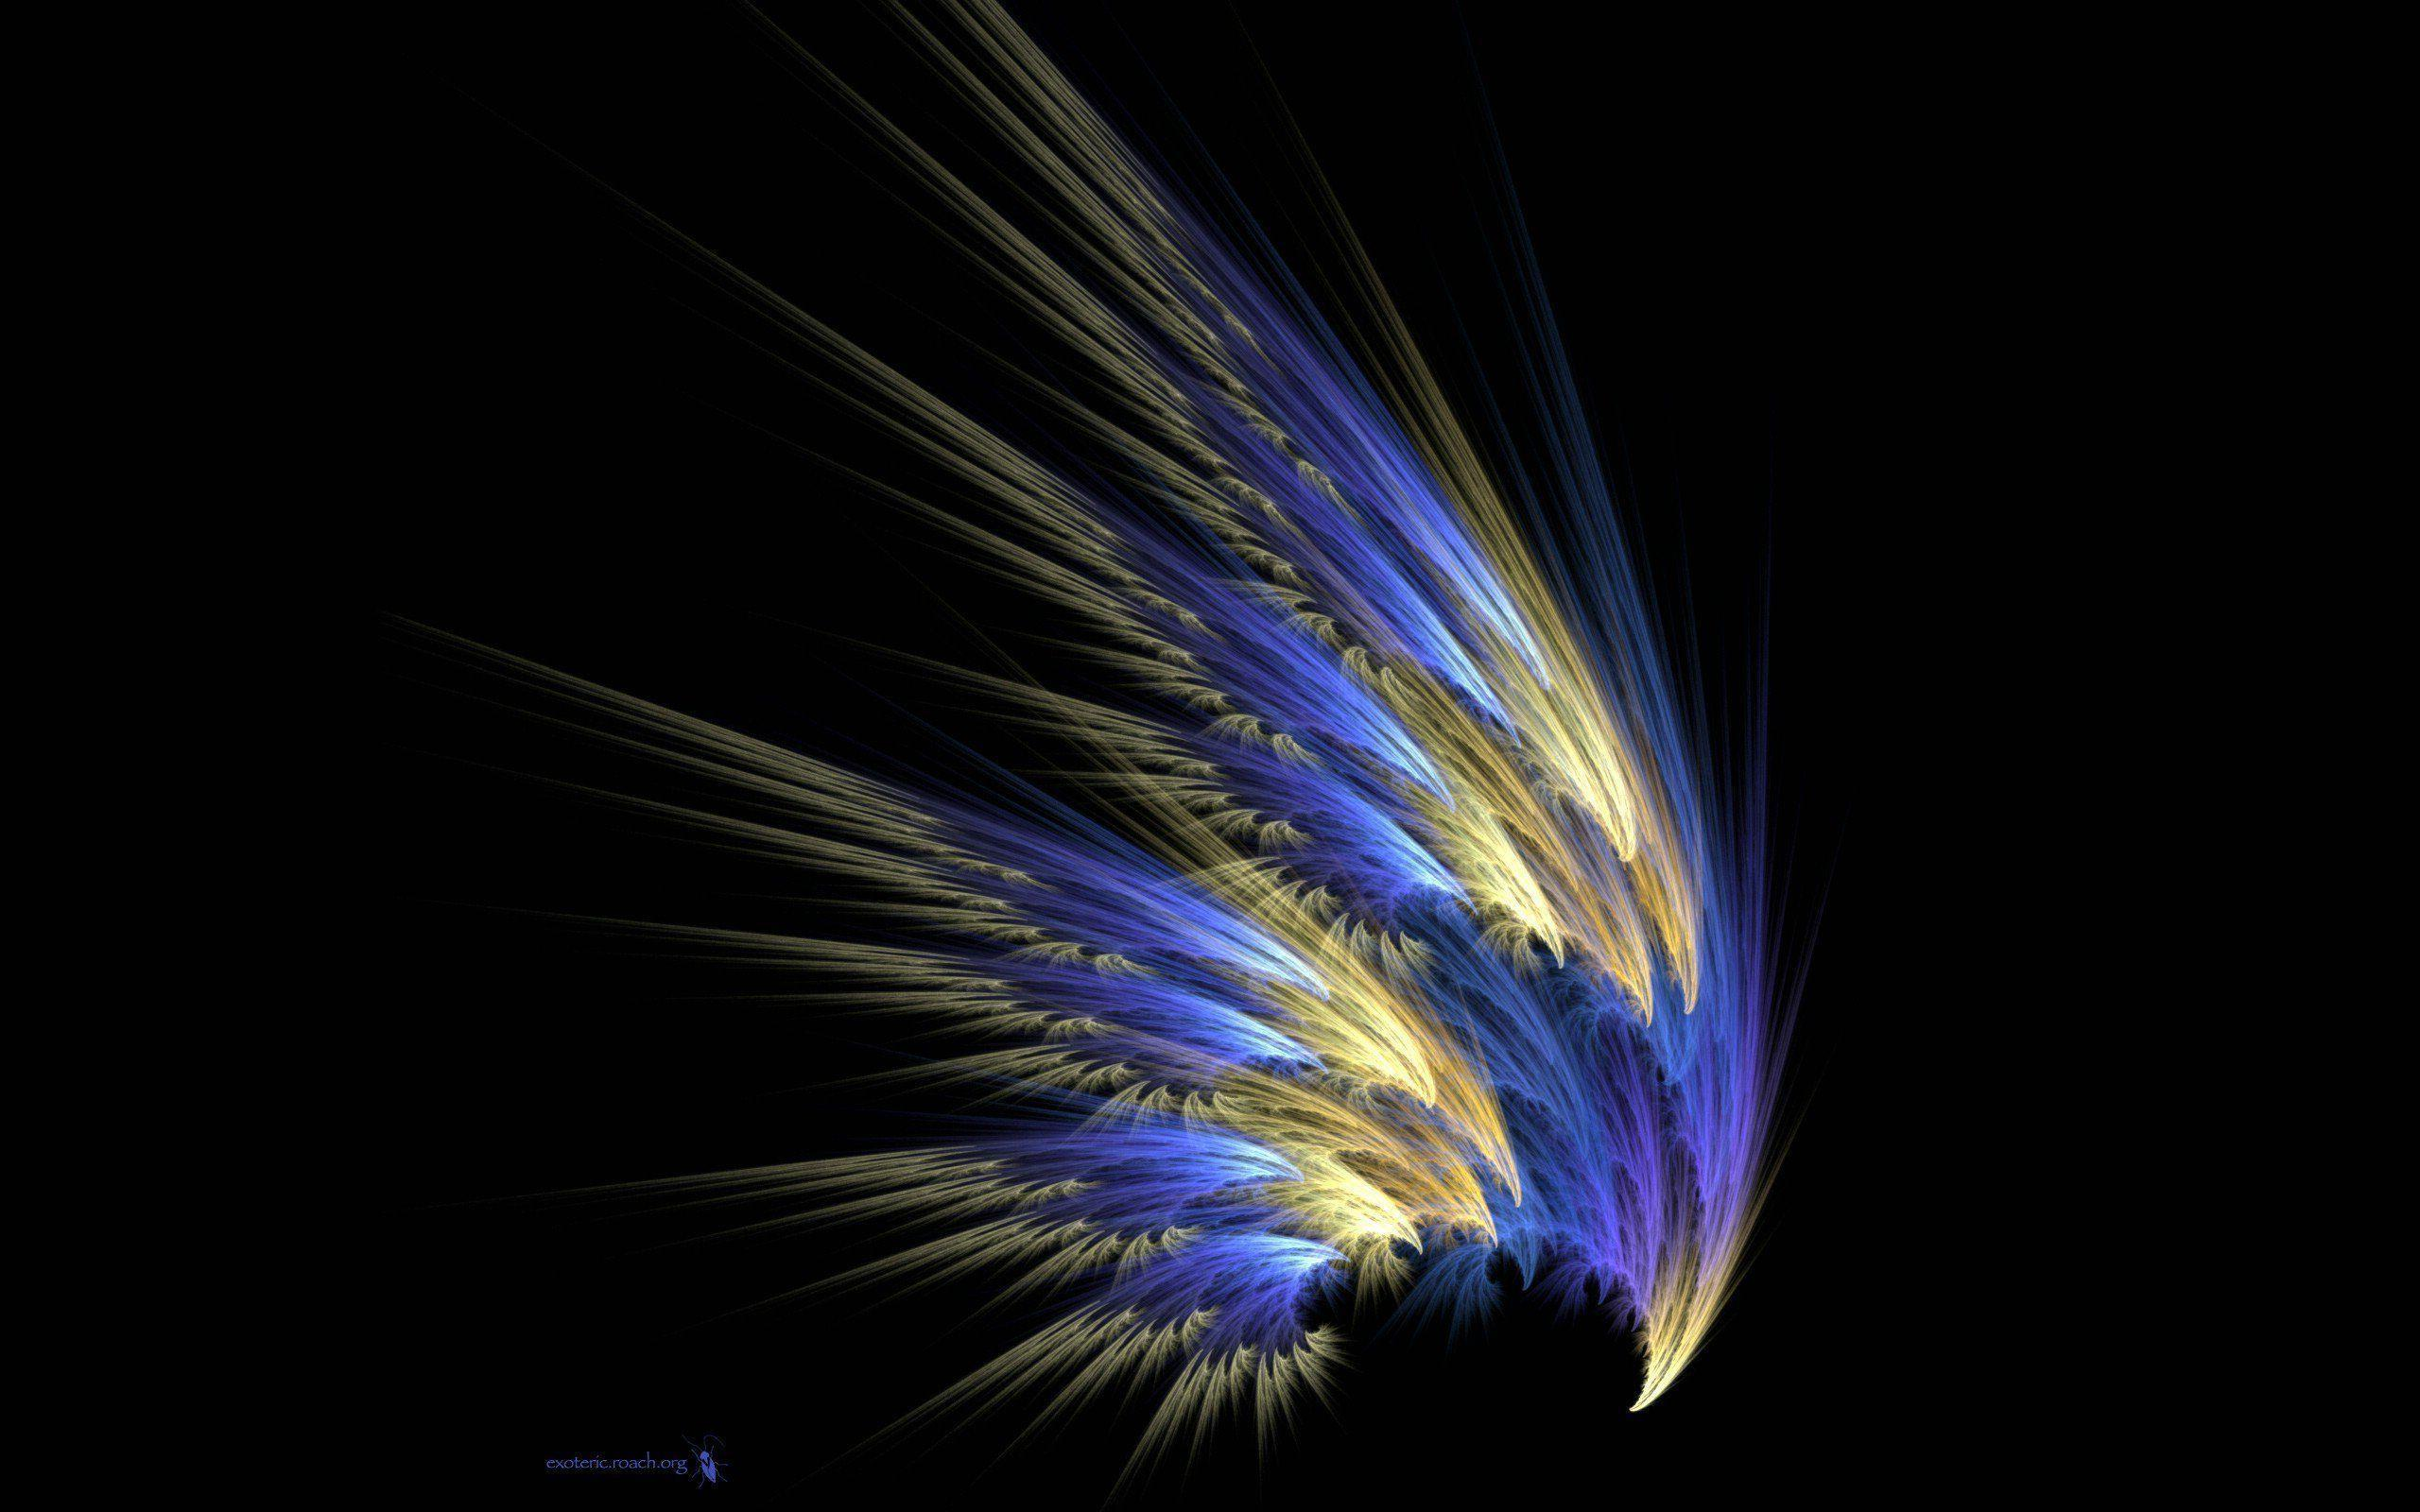 Galaxy Super Amoled Wallpapers For Samsung